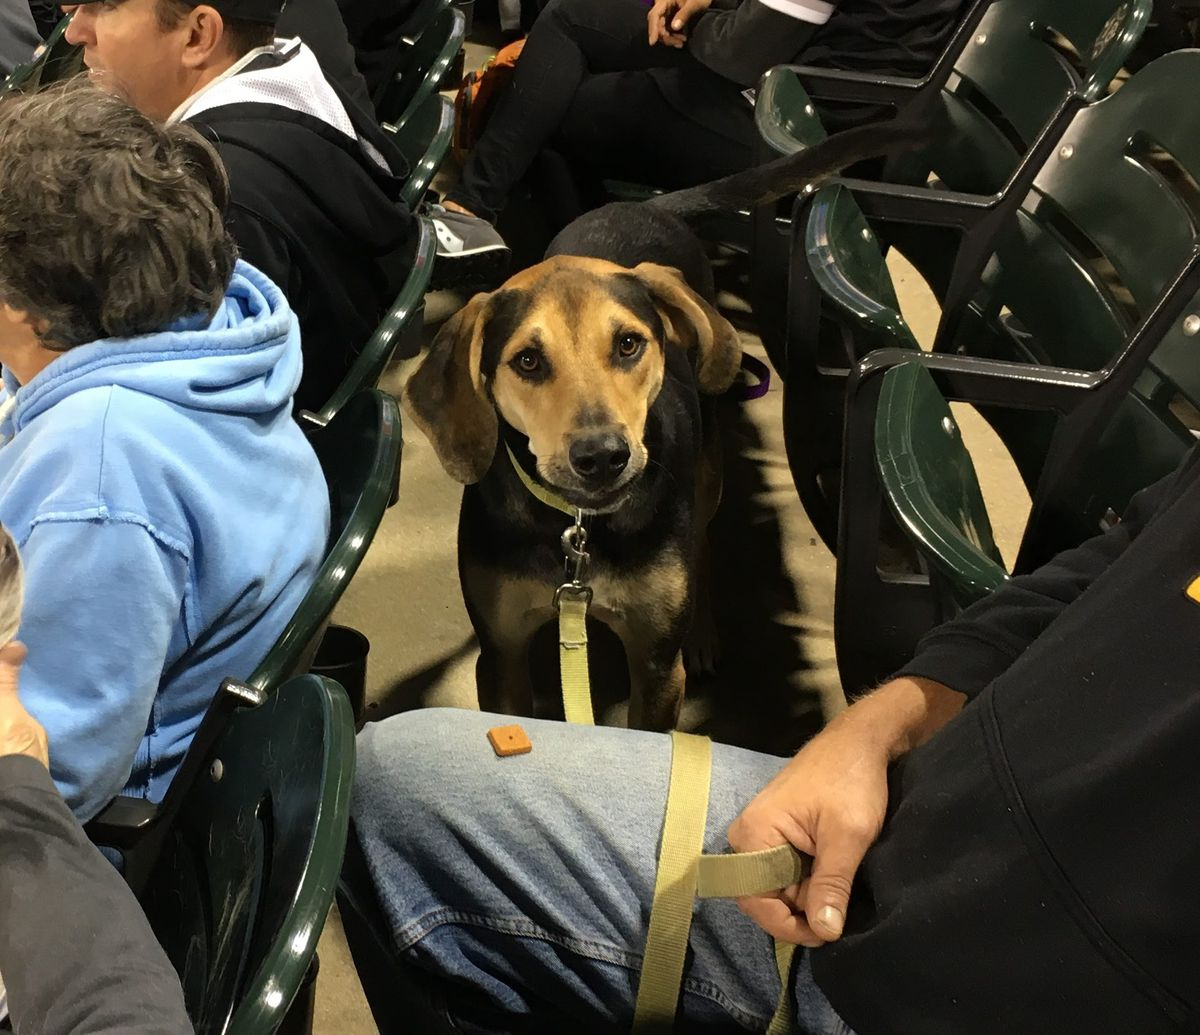 Jax is a Coonhound, who was rooting and howling for the White Sox all night.   Madeline Kenney